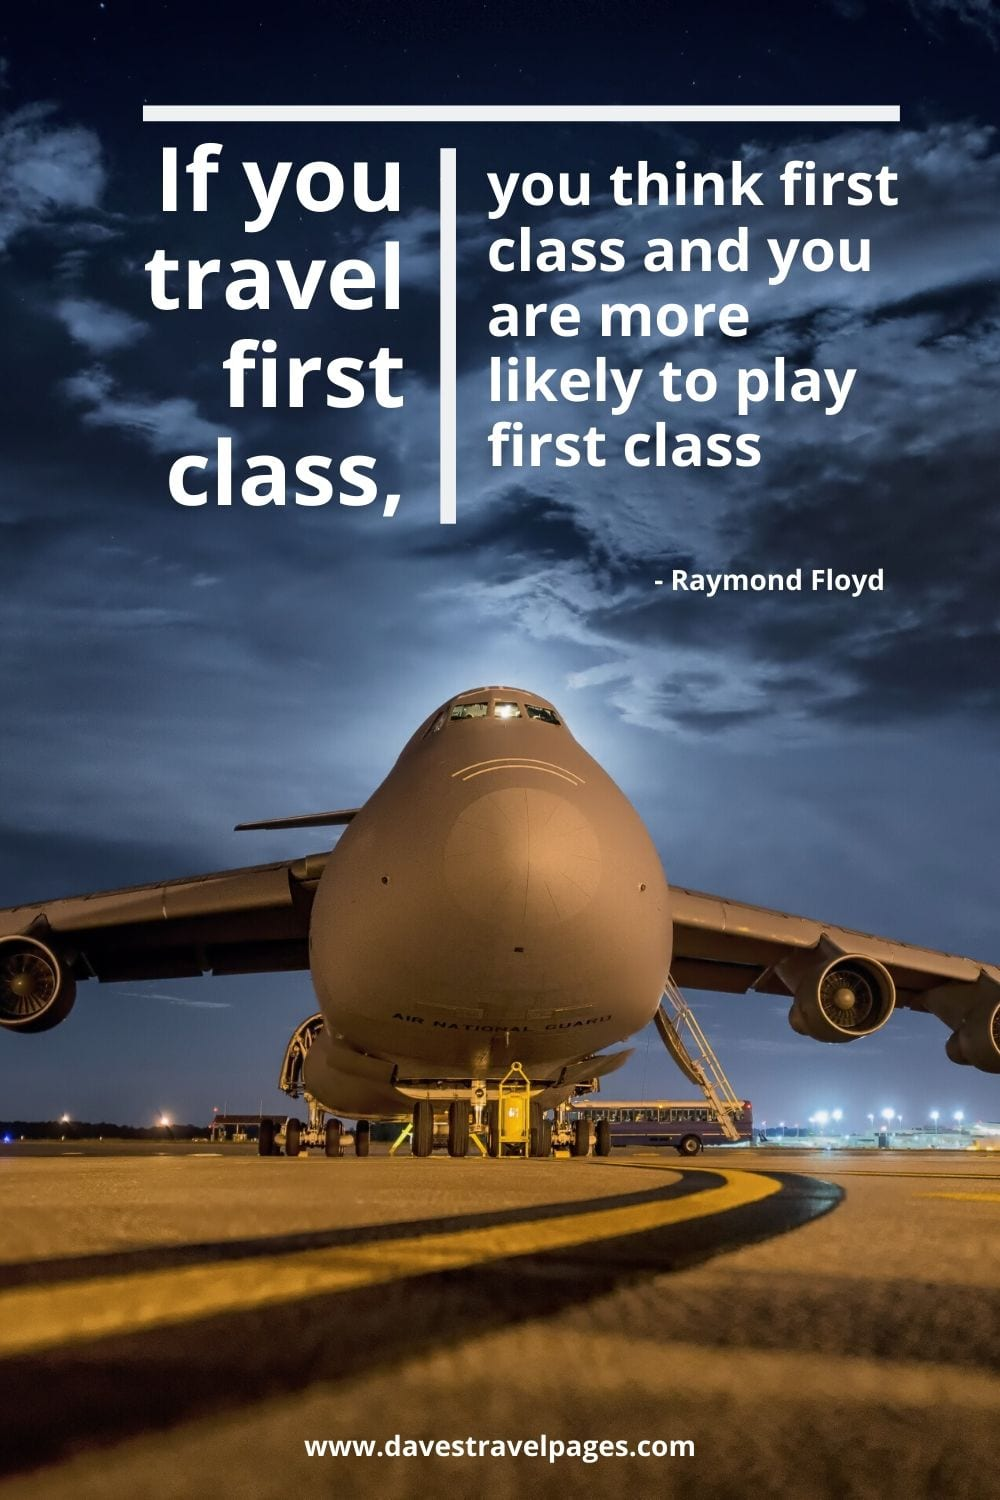 Thoughtful travel quote: If you travel first class, you think first class and you are more likely to play first class. Raymond Floyd